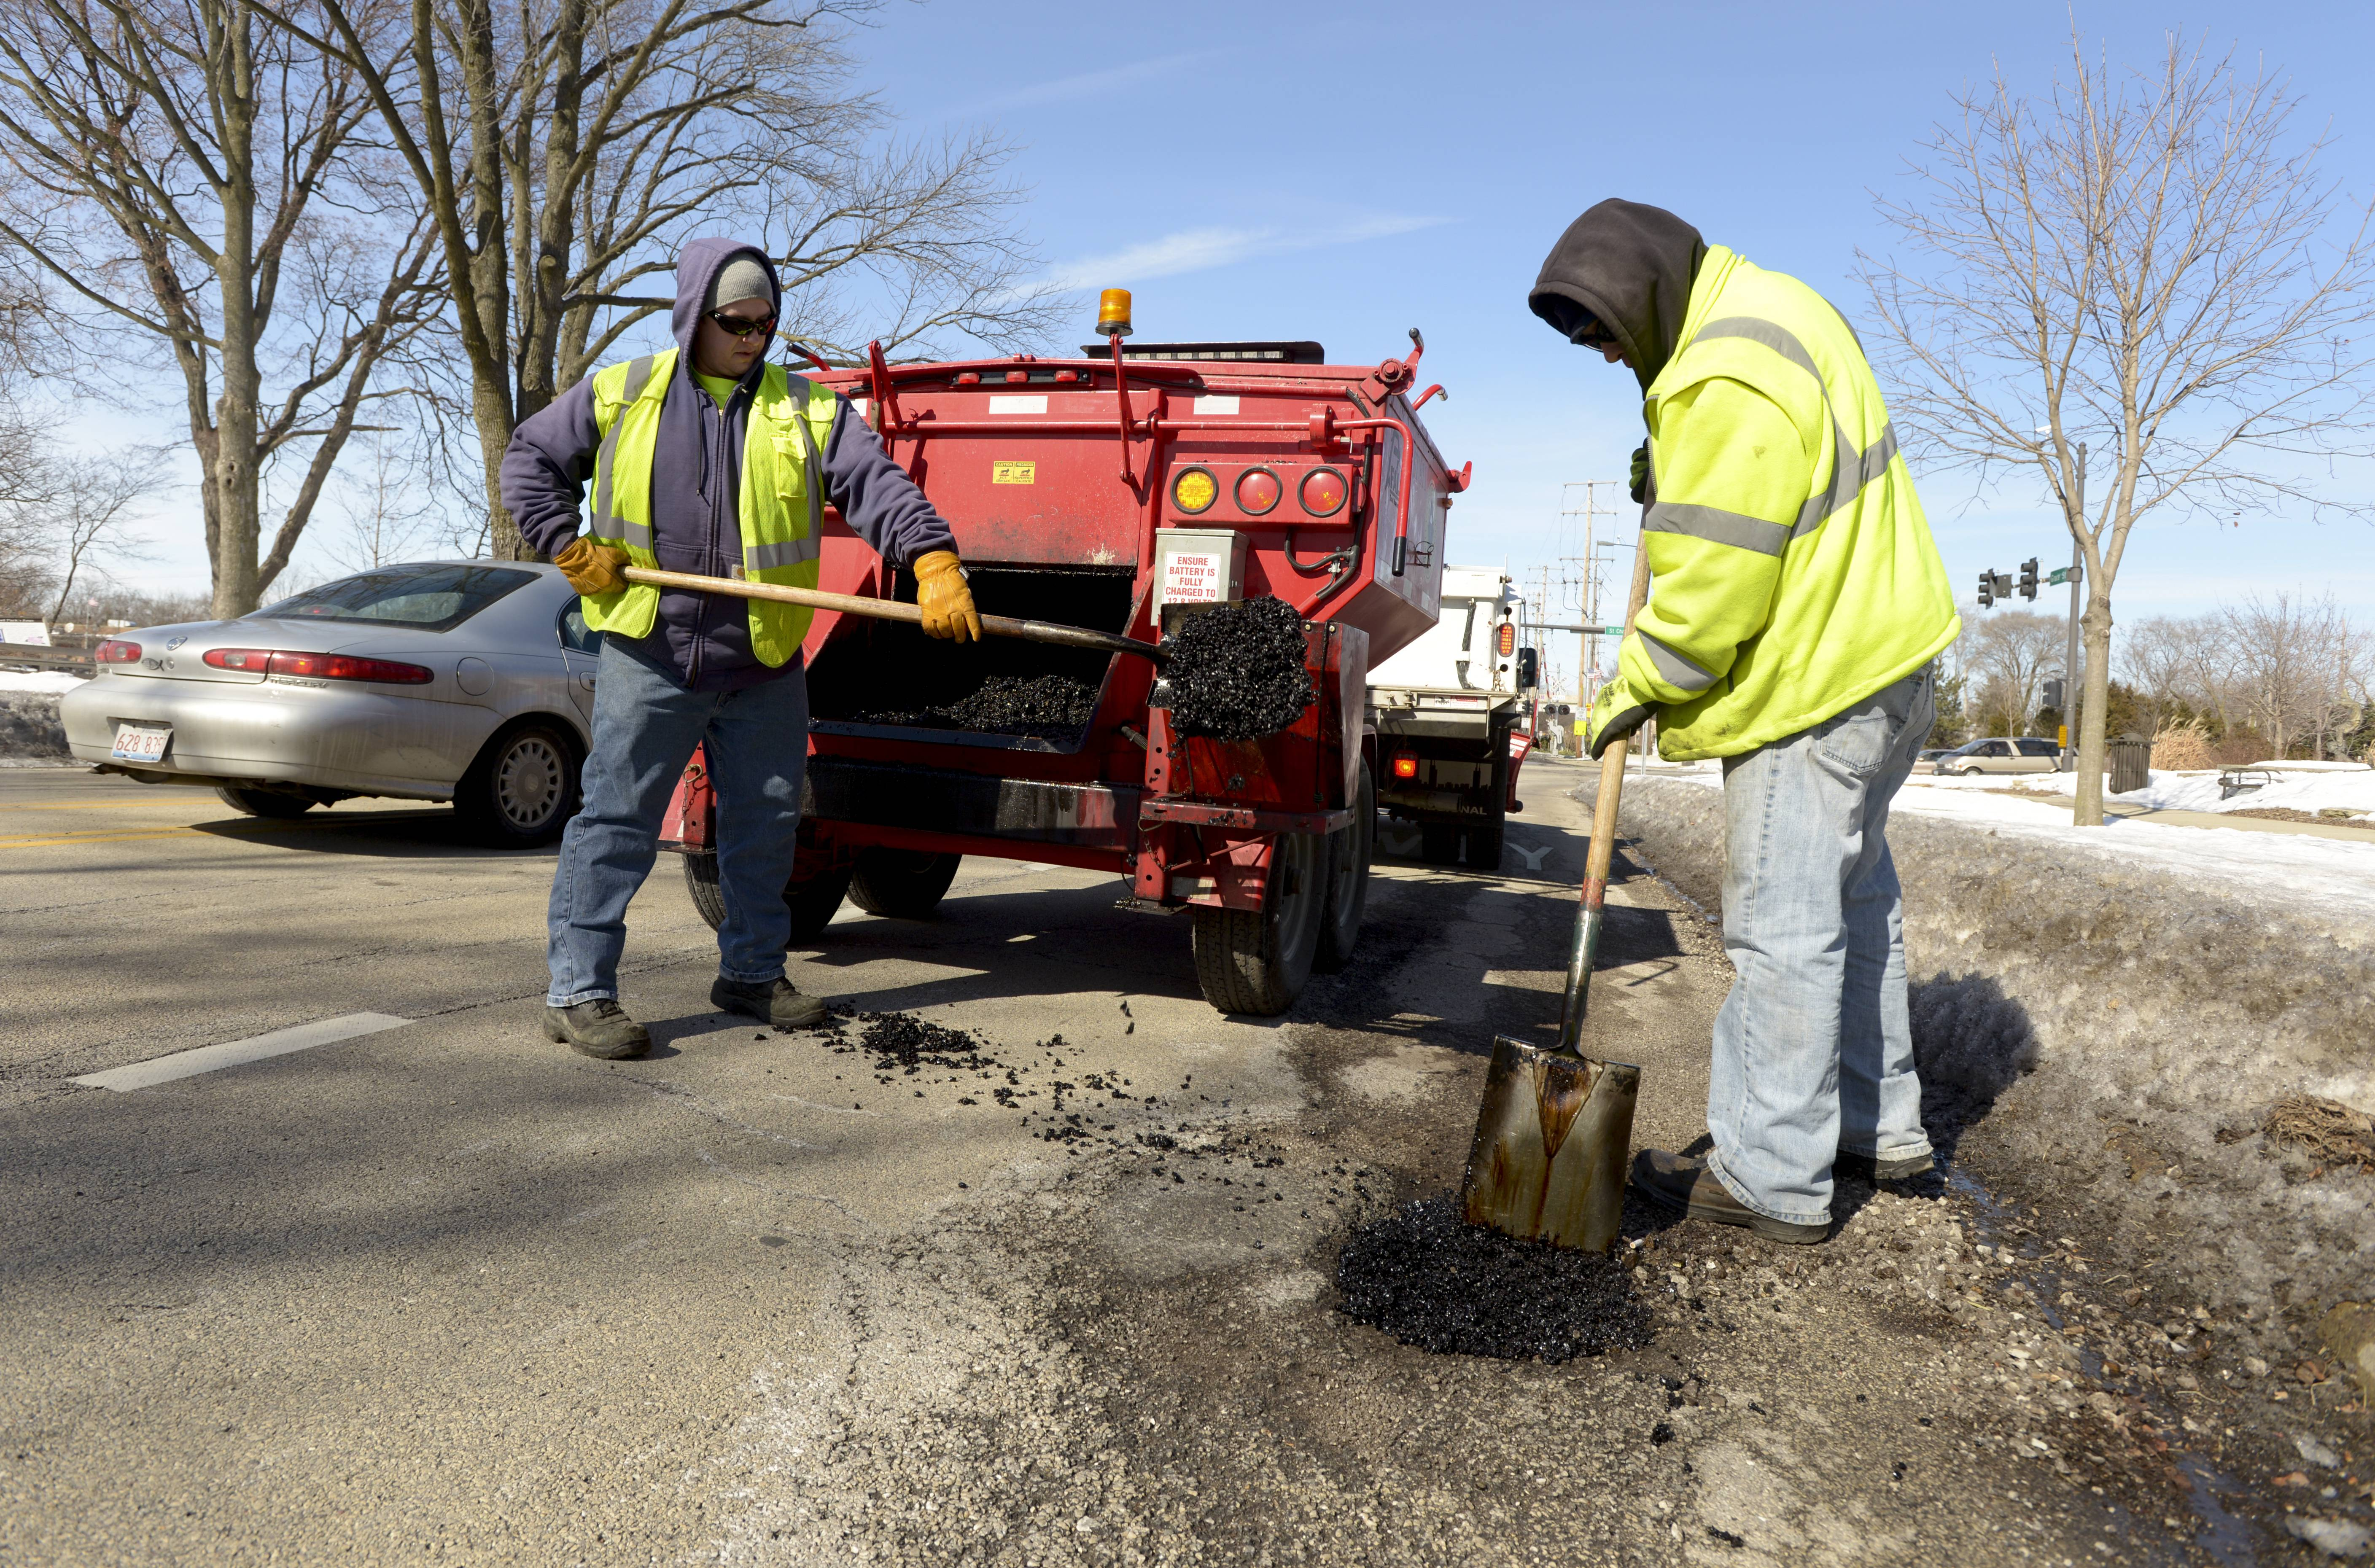 Employees from the Lombard public works fill in potholes along Grace Street in Lombard Monday afternoon. The crew said they had been filling holes all weekend with the worst of them along St. Charles Road.